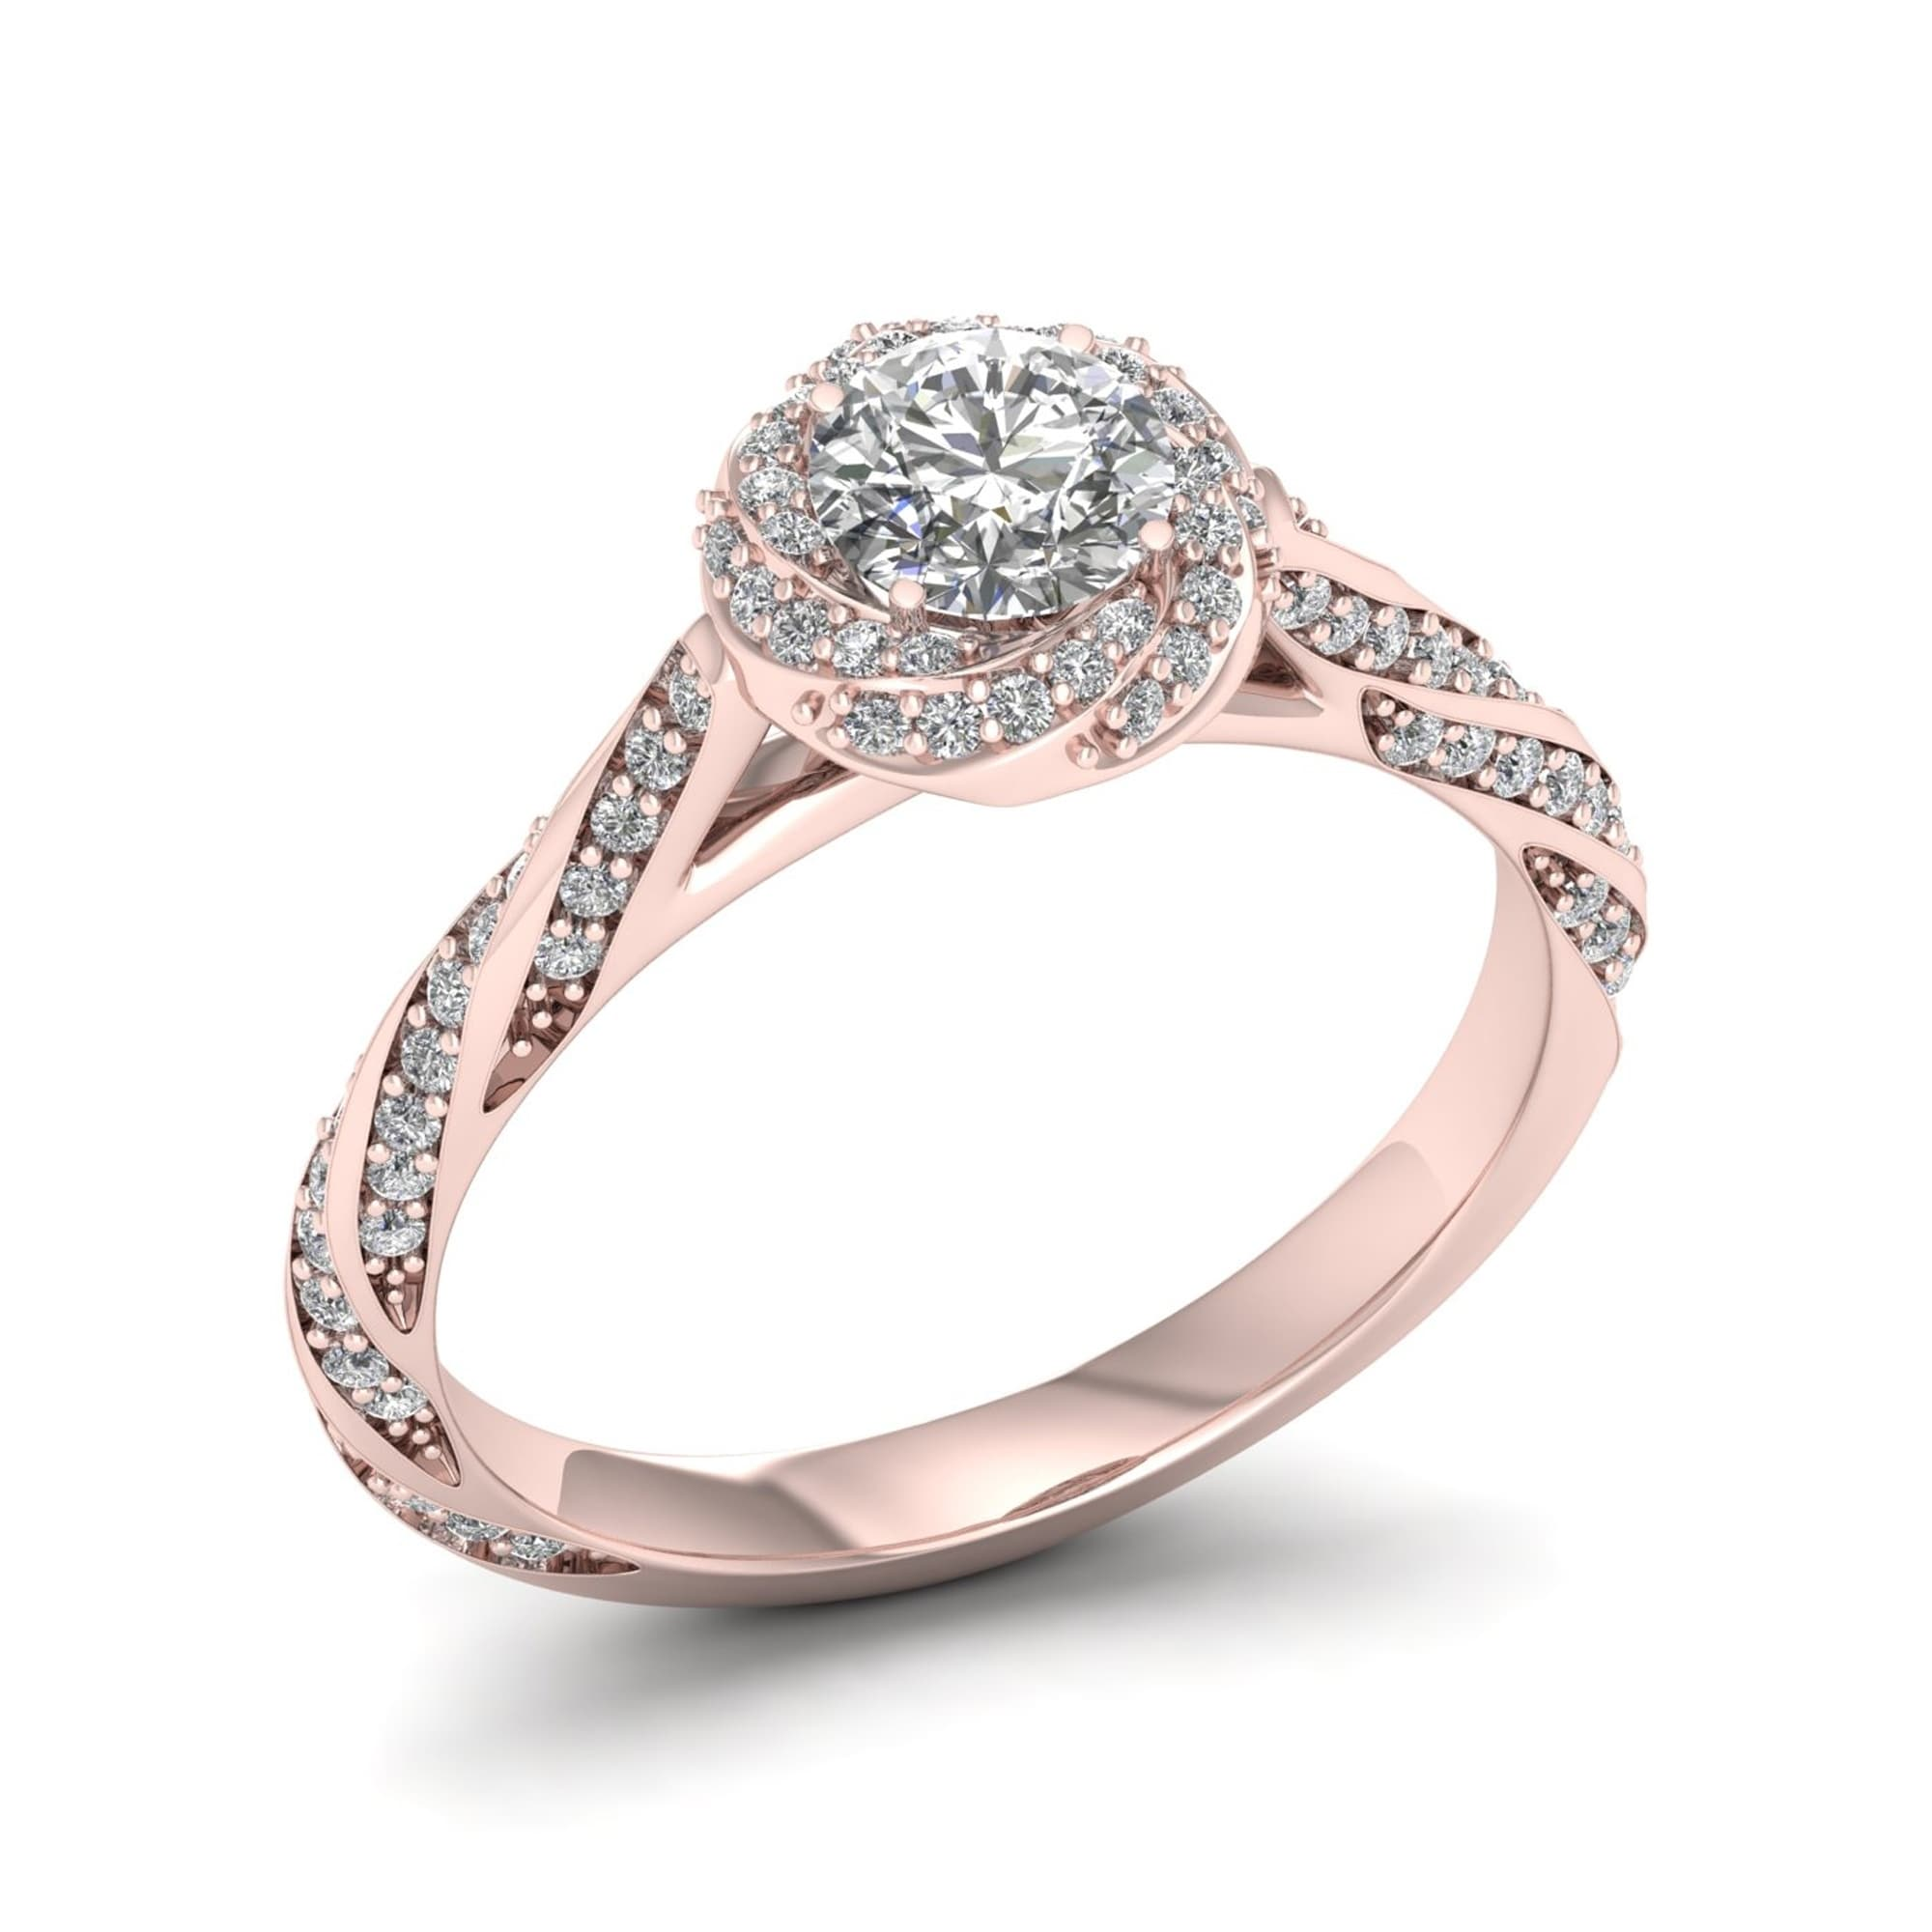 sapphire rings diamonds ring black stone choosing stones an gem other aphrodite baroque jewellery engagement pink and